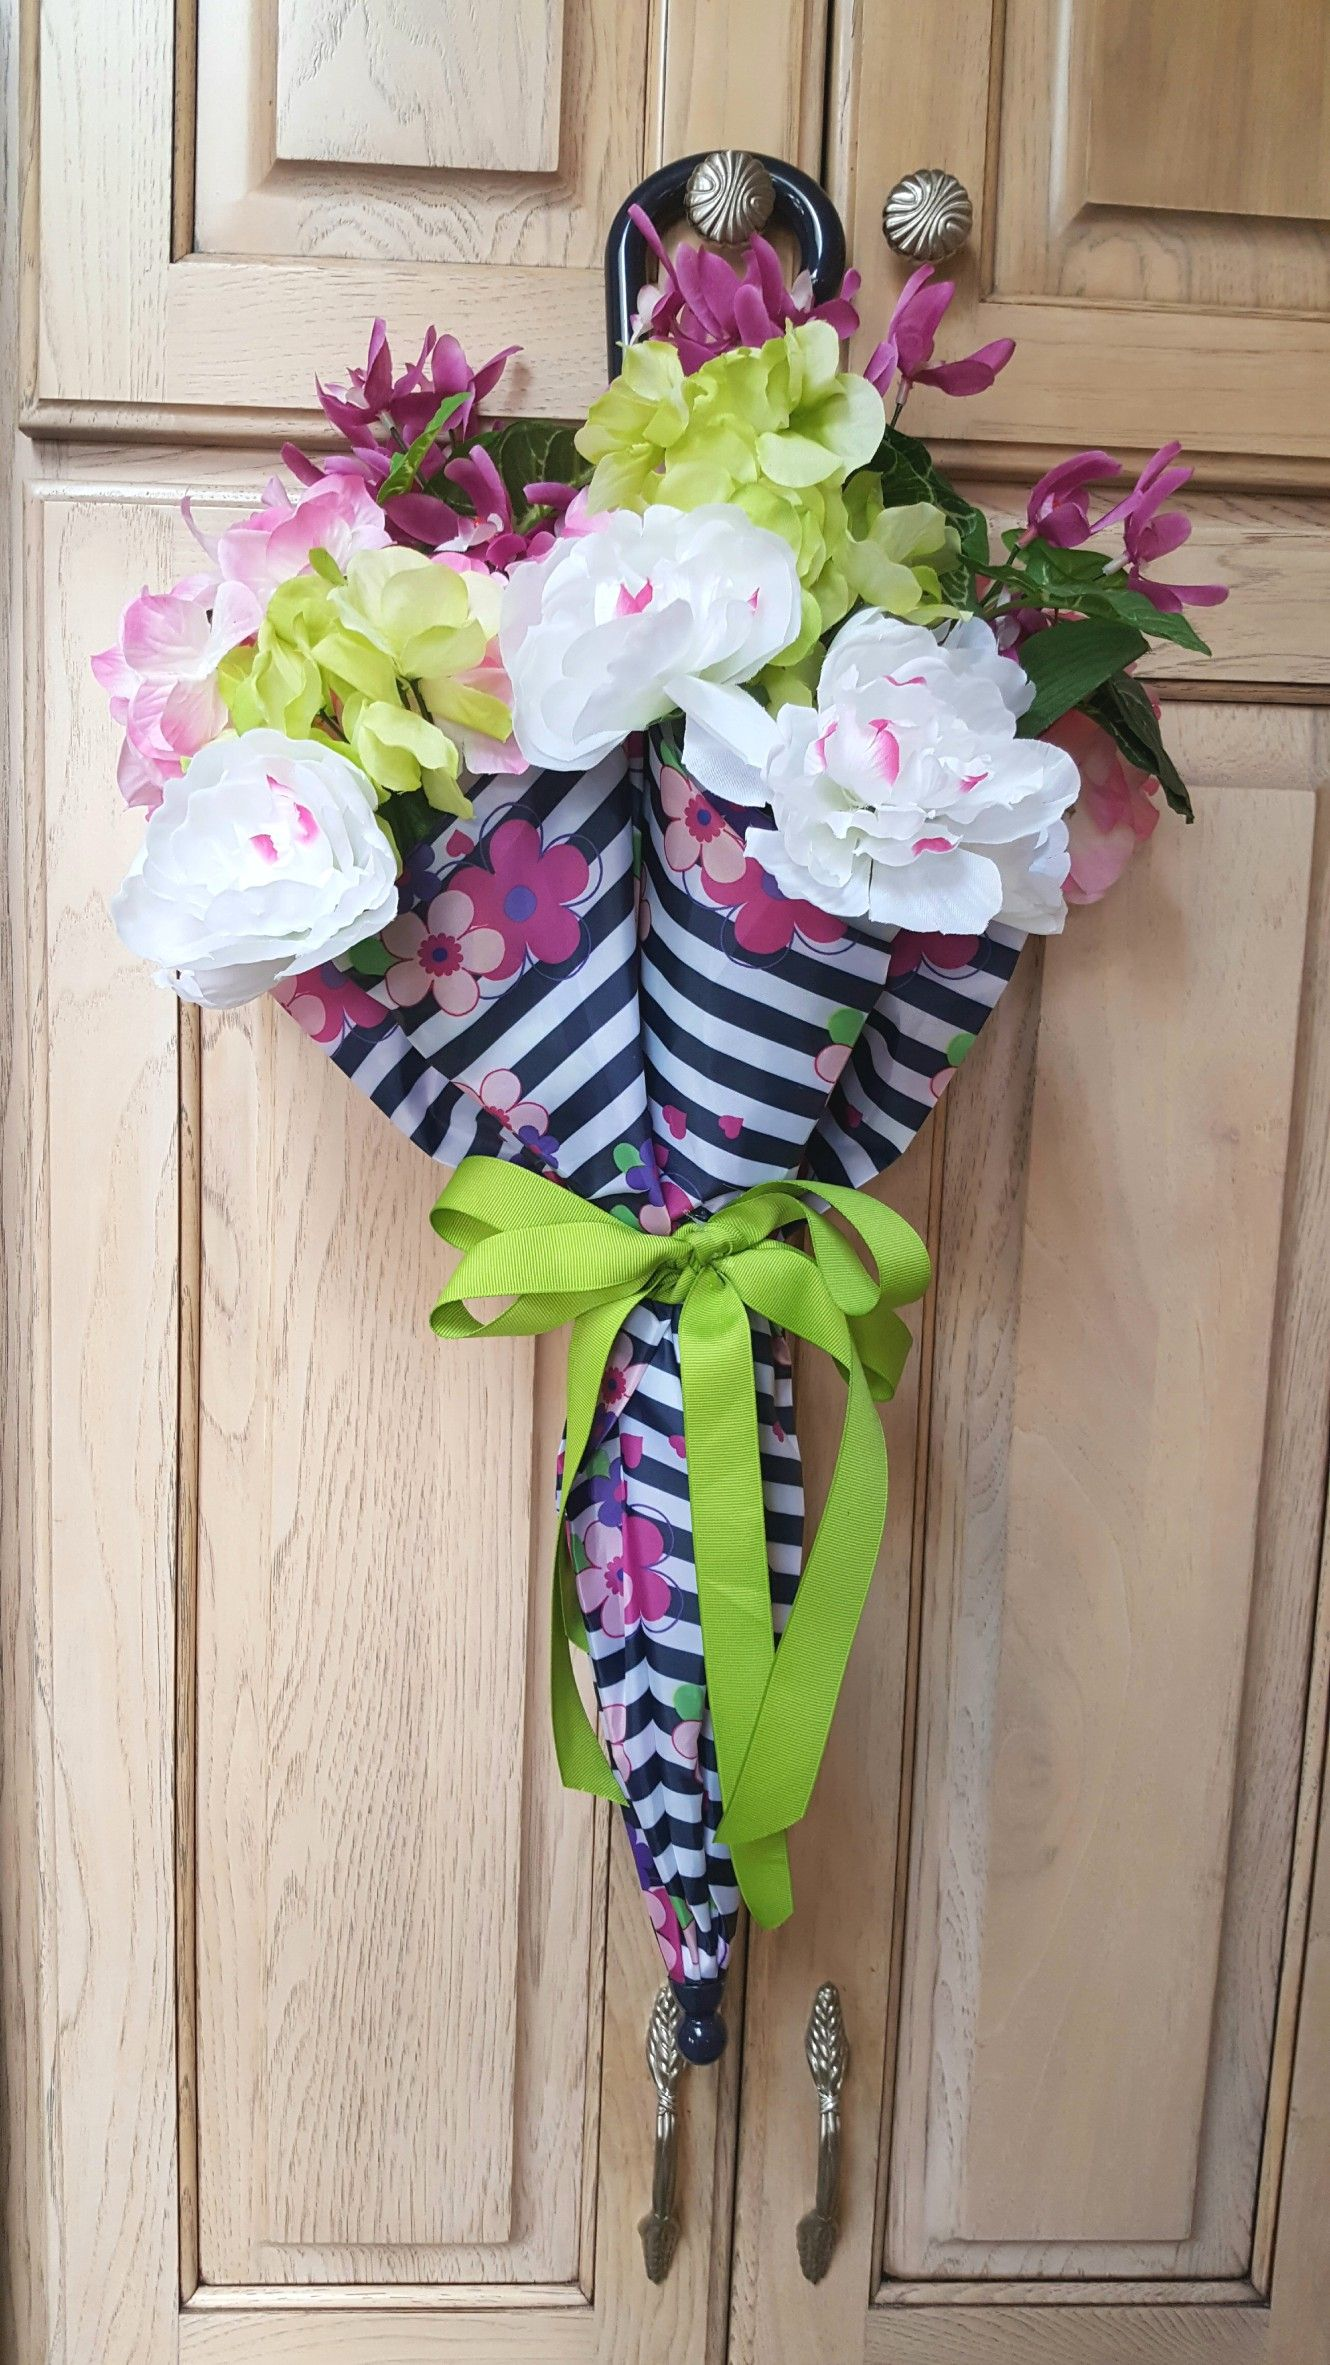 Happy Spring Umbrella Door Decoration By Lynn This Wreath Is For A